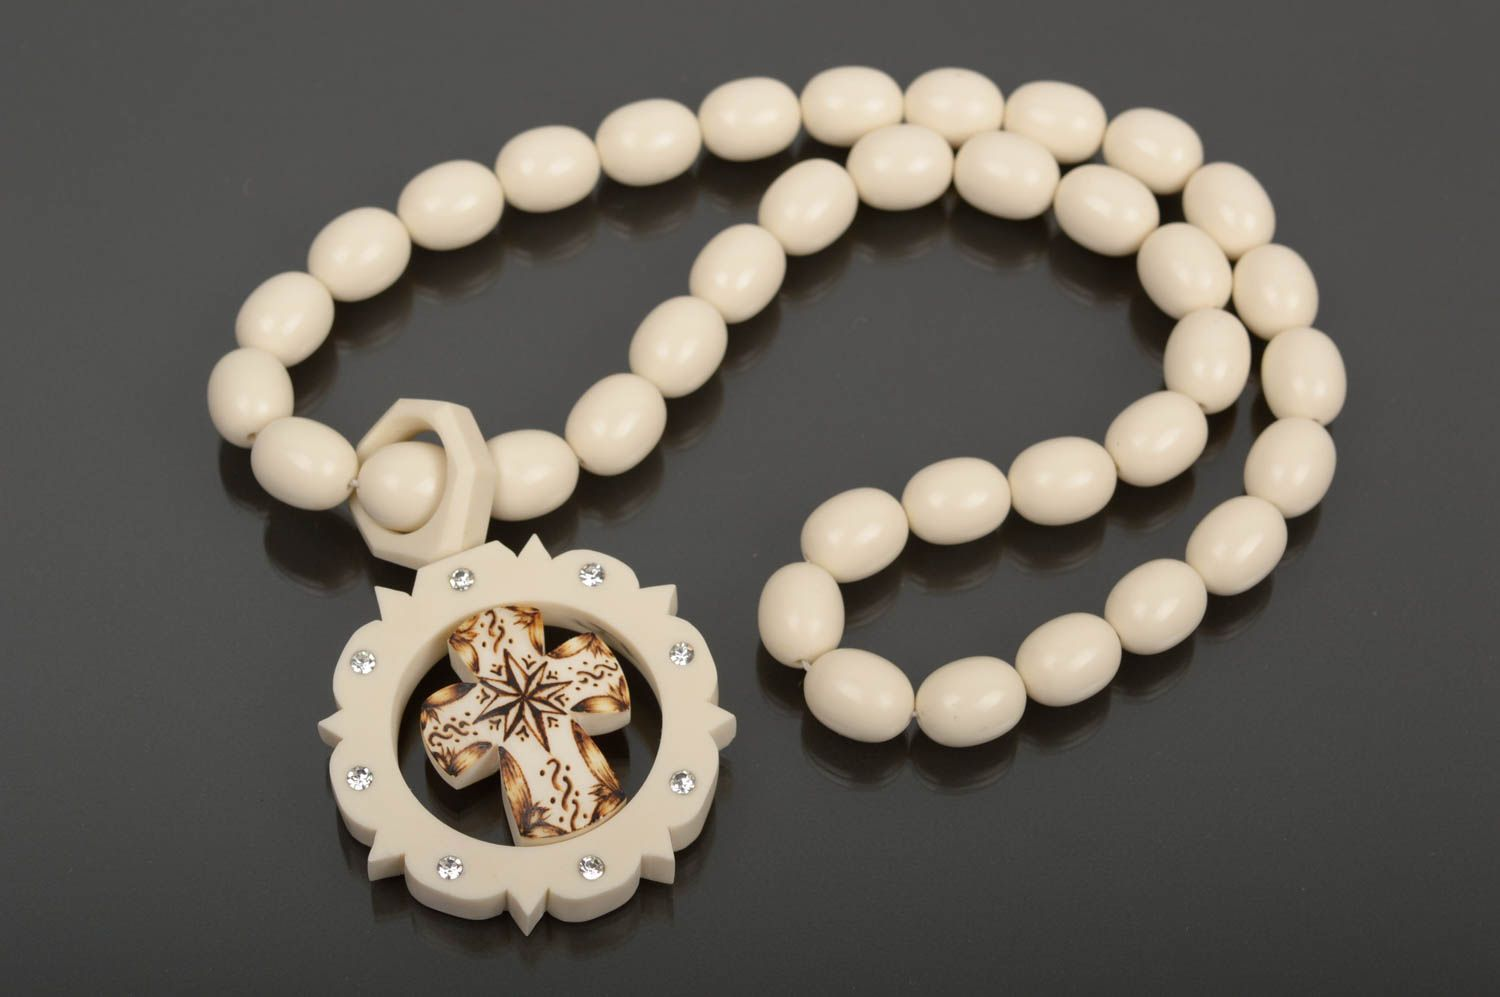 Handmade rosary designer accessory gift ideas bone rosary gift for men photo 1